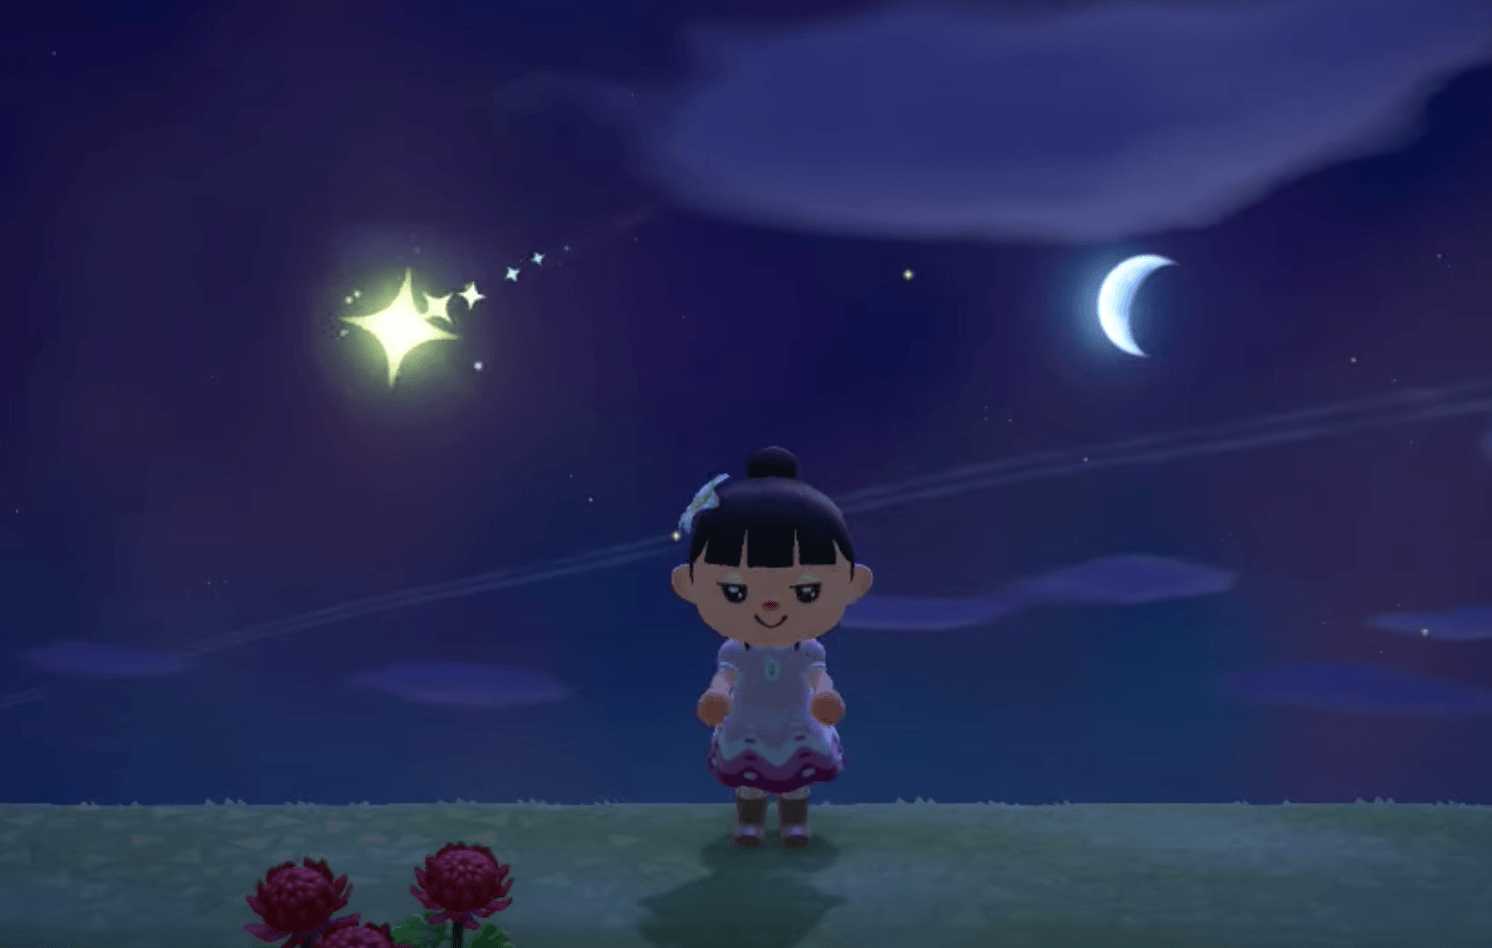 wishing upon a star with crescent moon in background